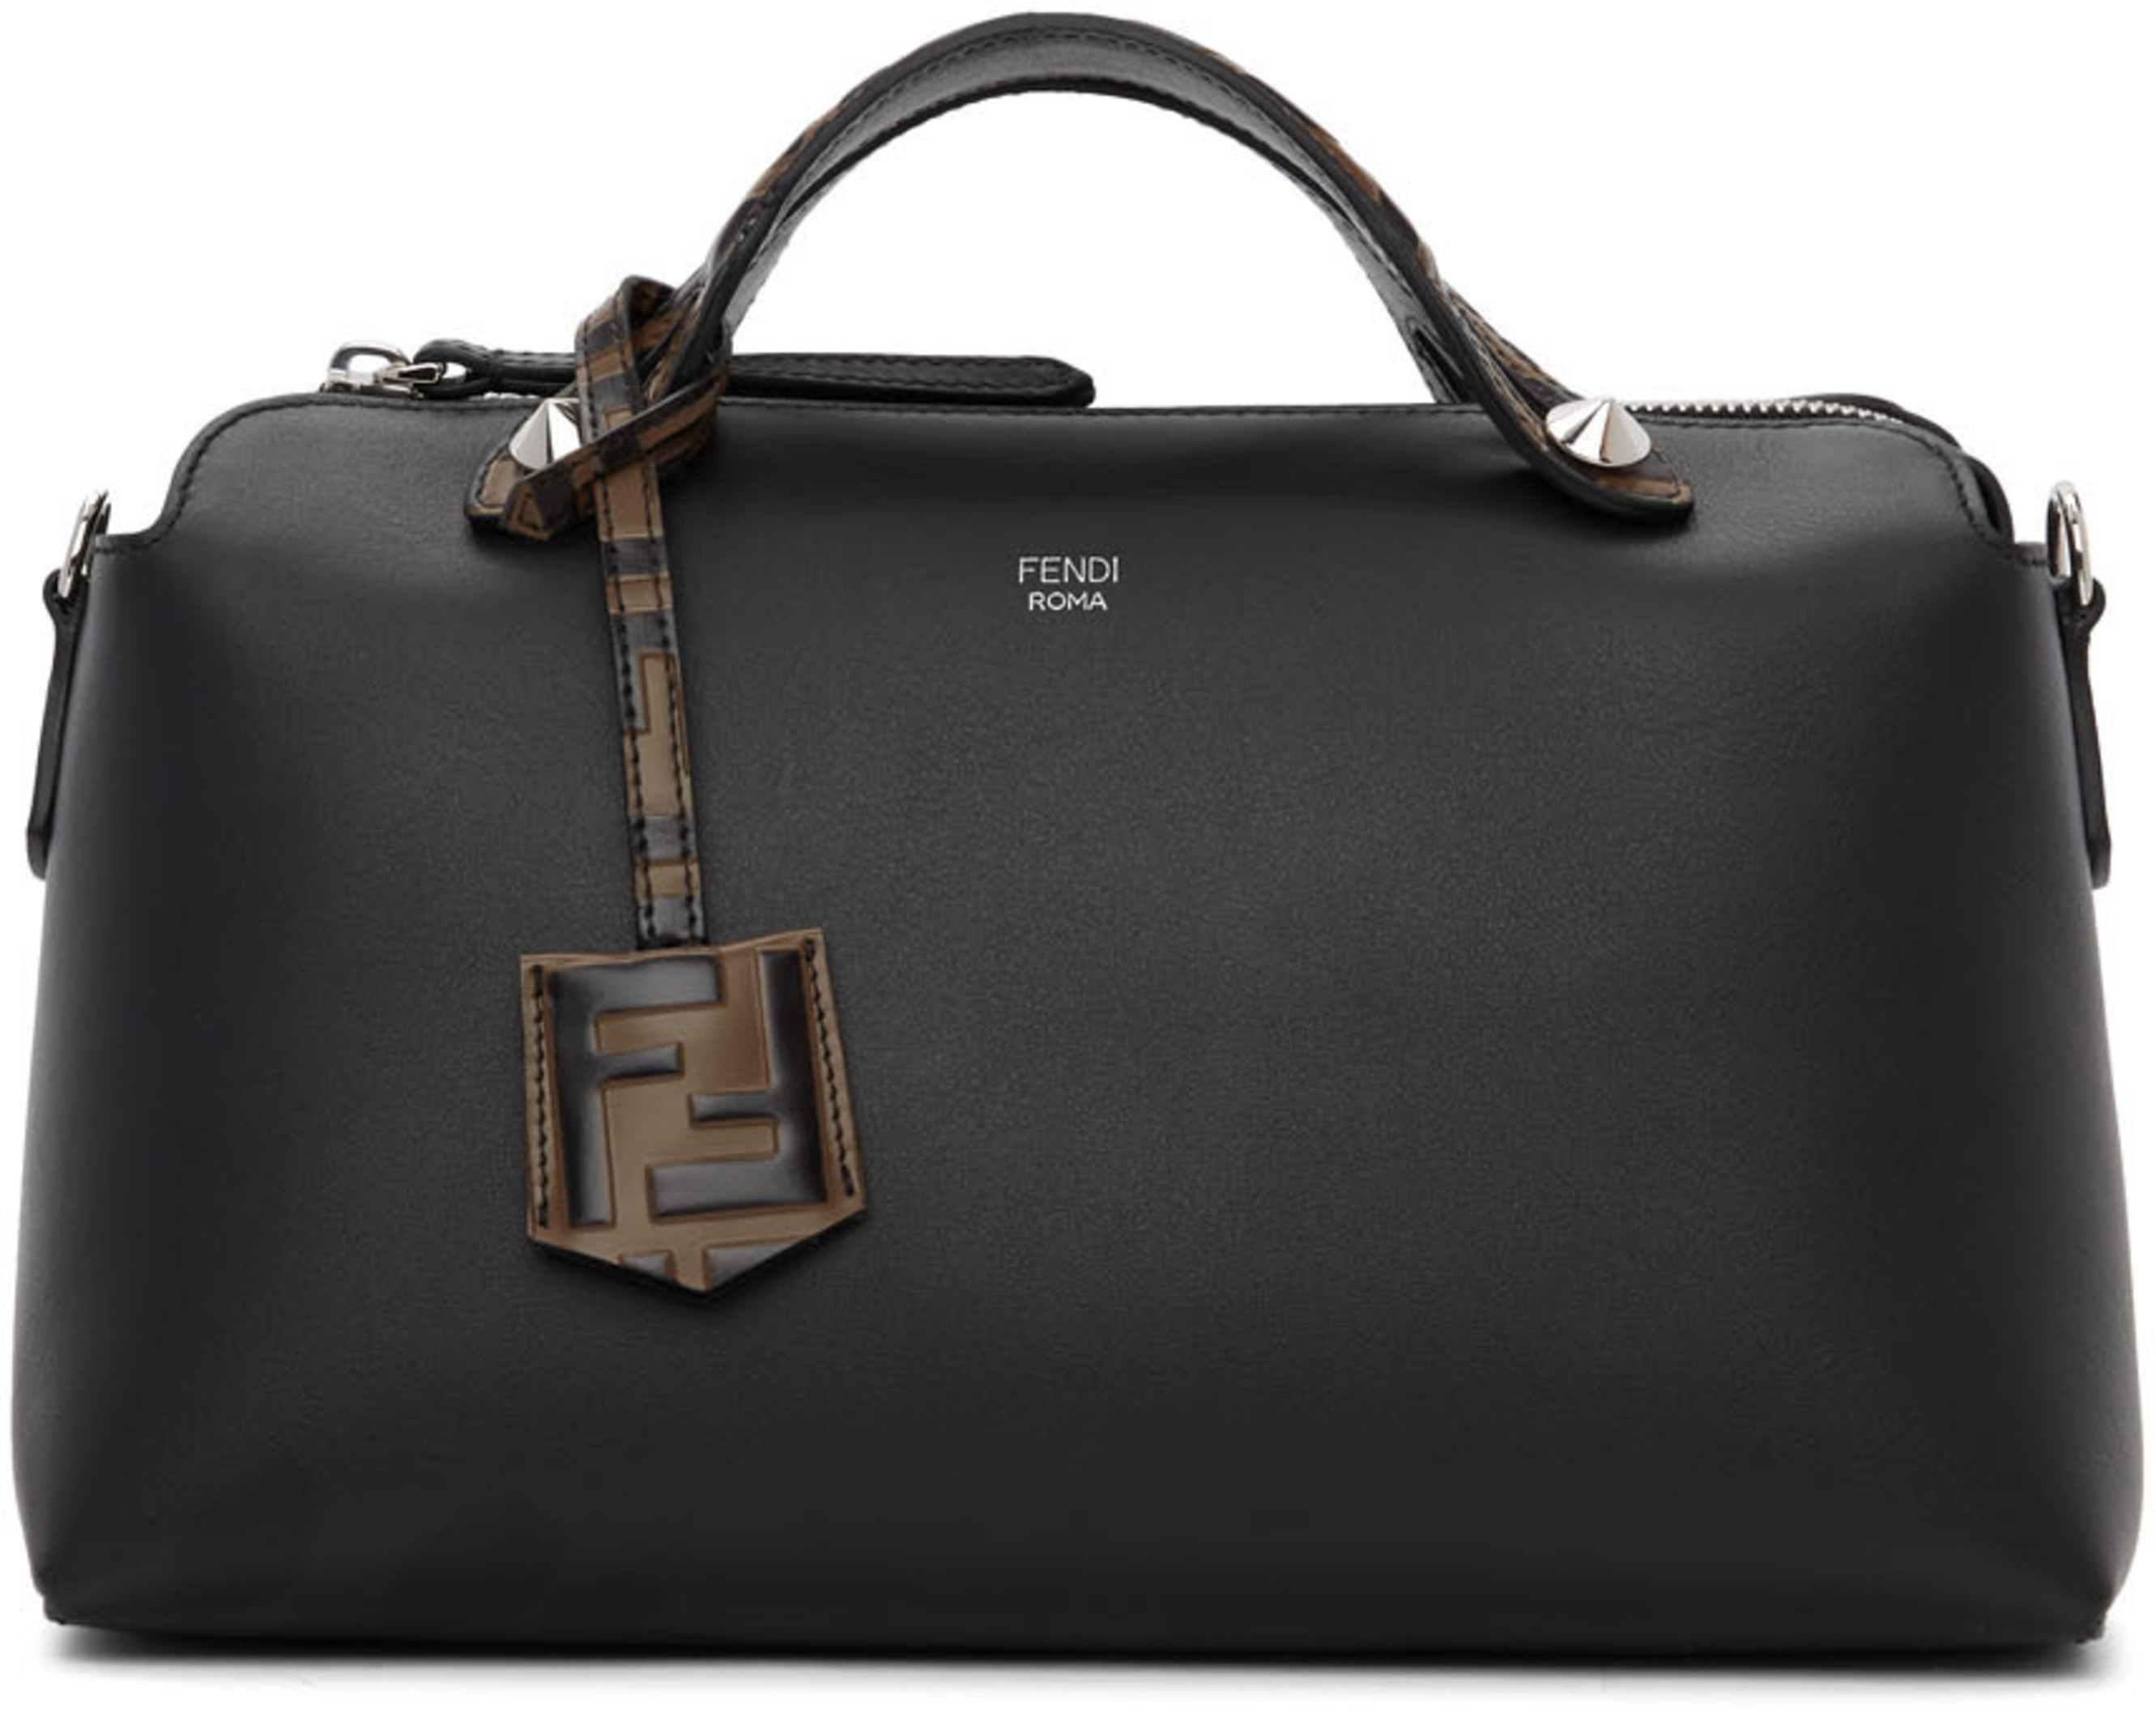 80b2456672 Black 'Forever Fendi' By The Way Bag